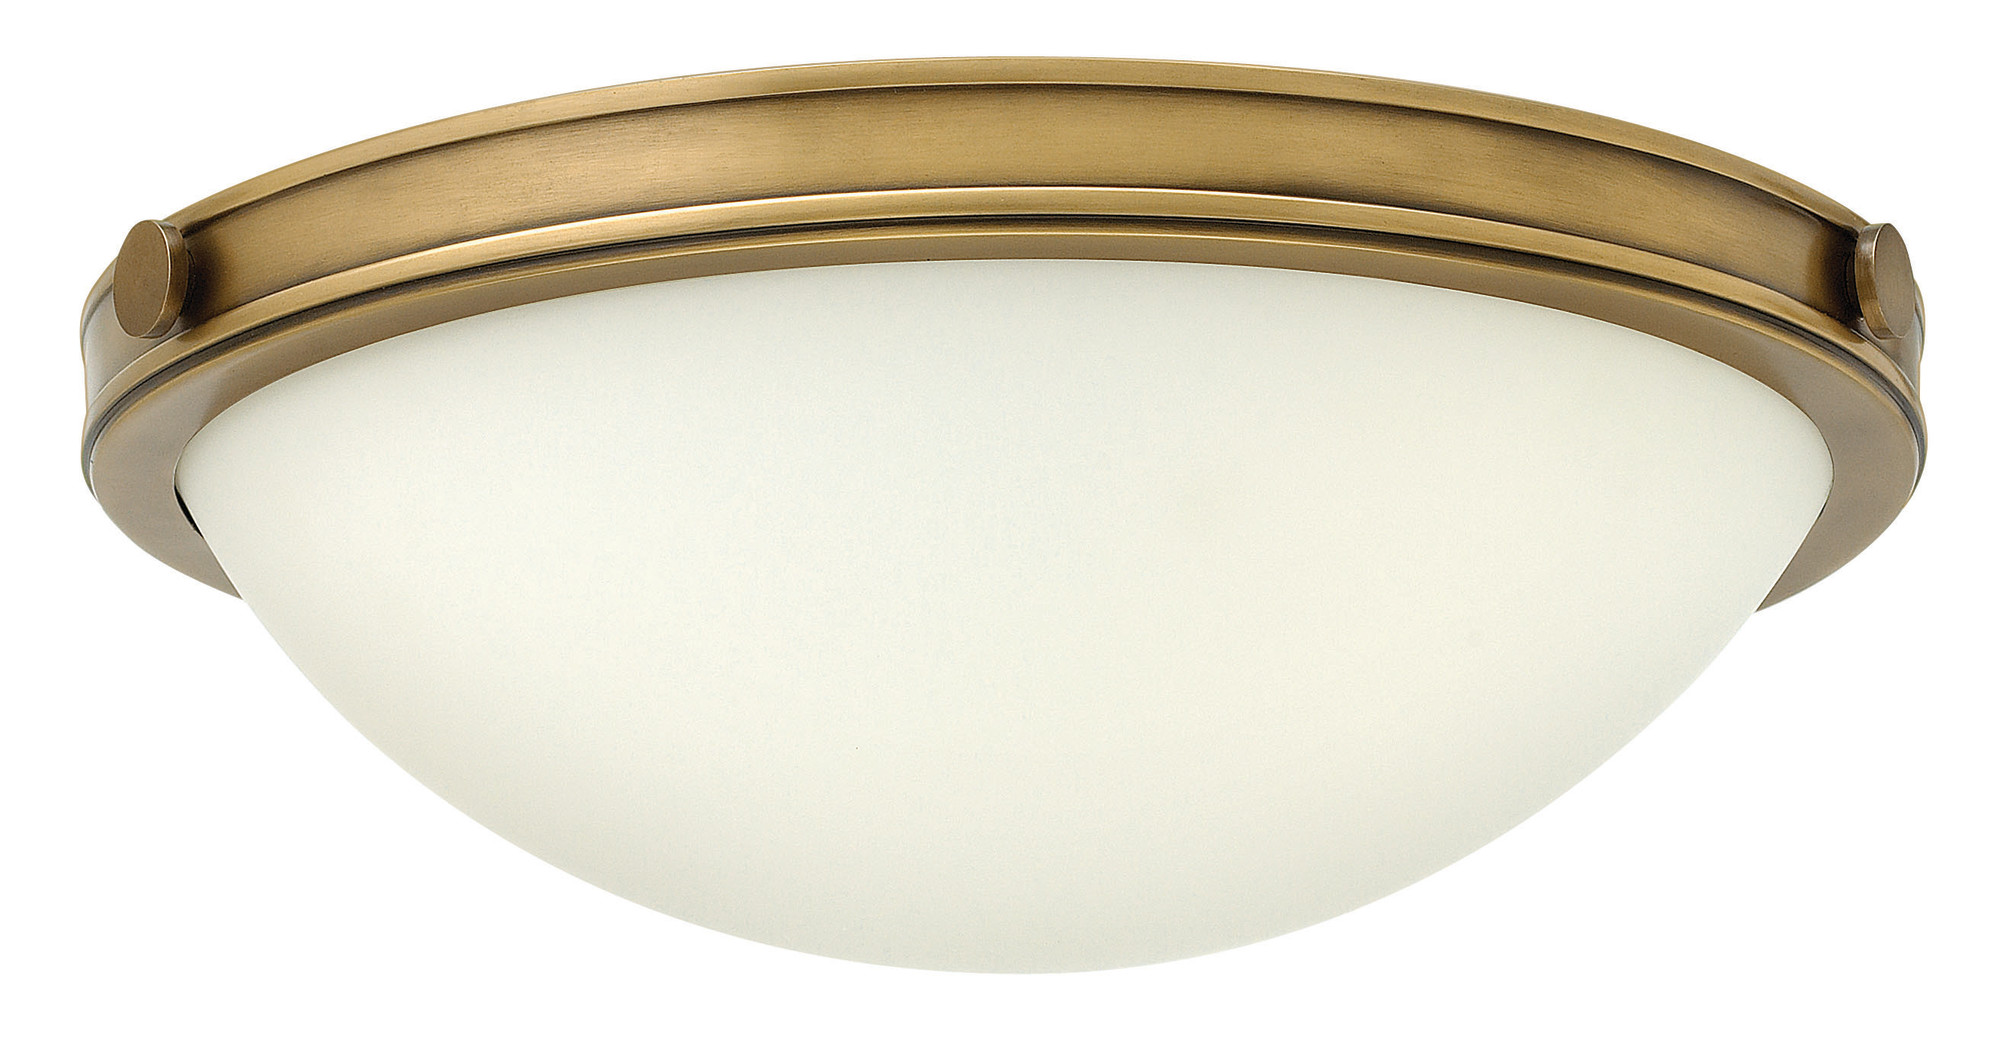 pretty nice 66ac5 cec54 Details about Hinkley Lighting 3782 2 Light Flush Mount Ceiling Fixture fro  - Brass